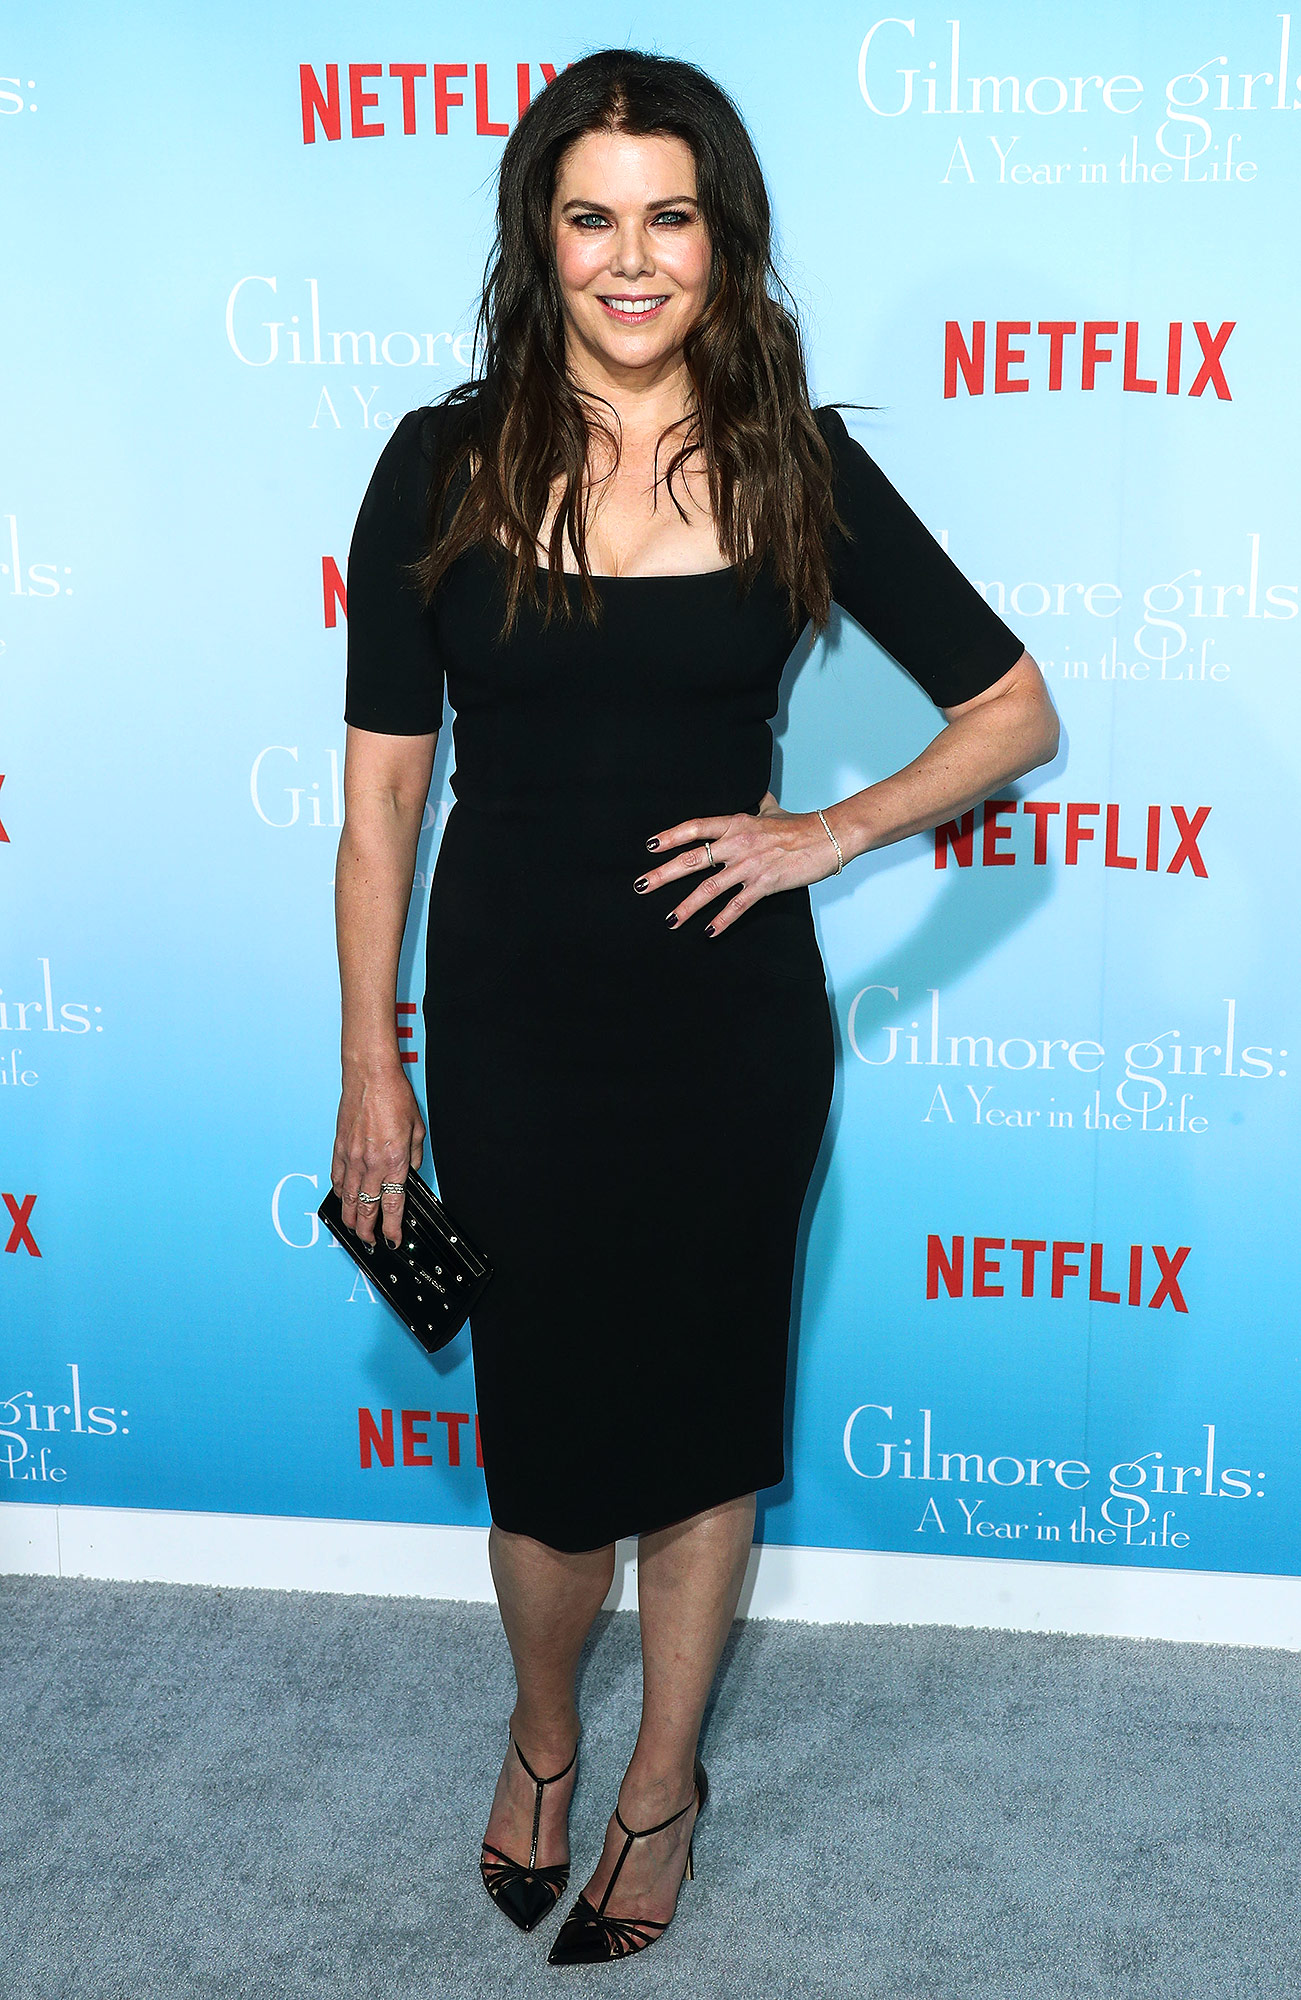 Los Angeles Premiere Of Netflix's 'Gilmore Girls: A Year In The Life'